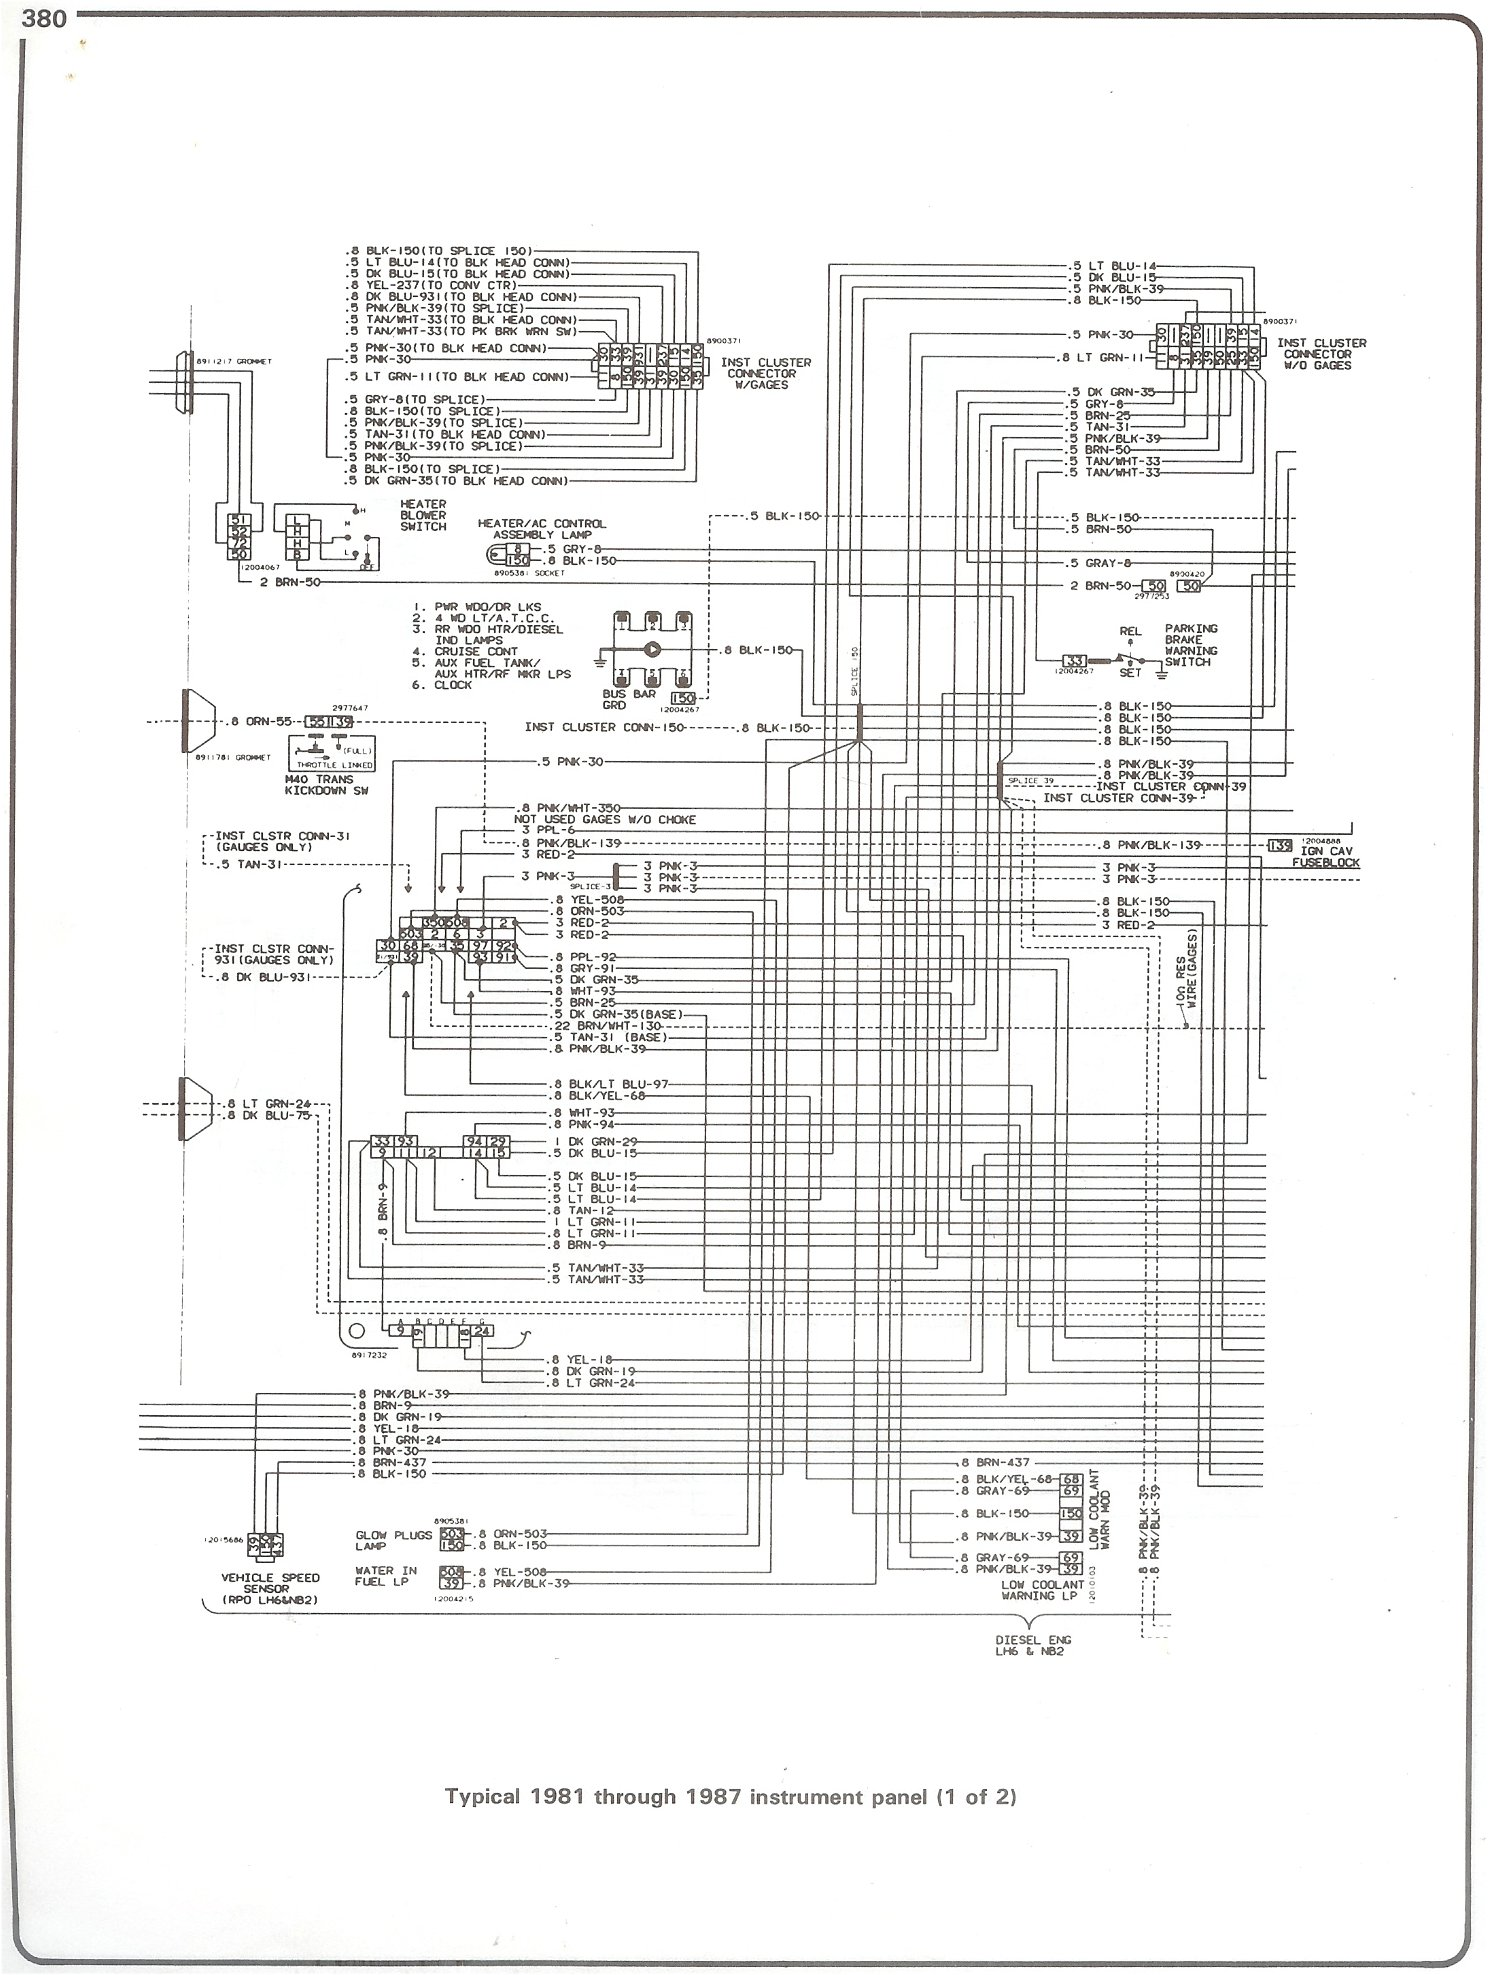 1983 Chevy Dashboard Wiring Diagram Third Level 69 Gmc Pickup Diagrams 1985 1969 Impala Source 86 Truck